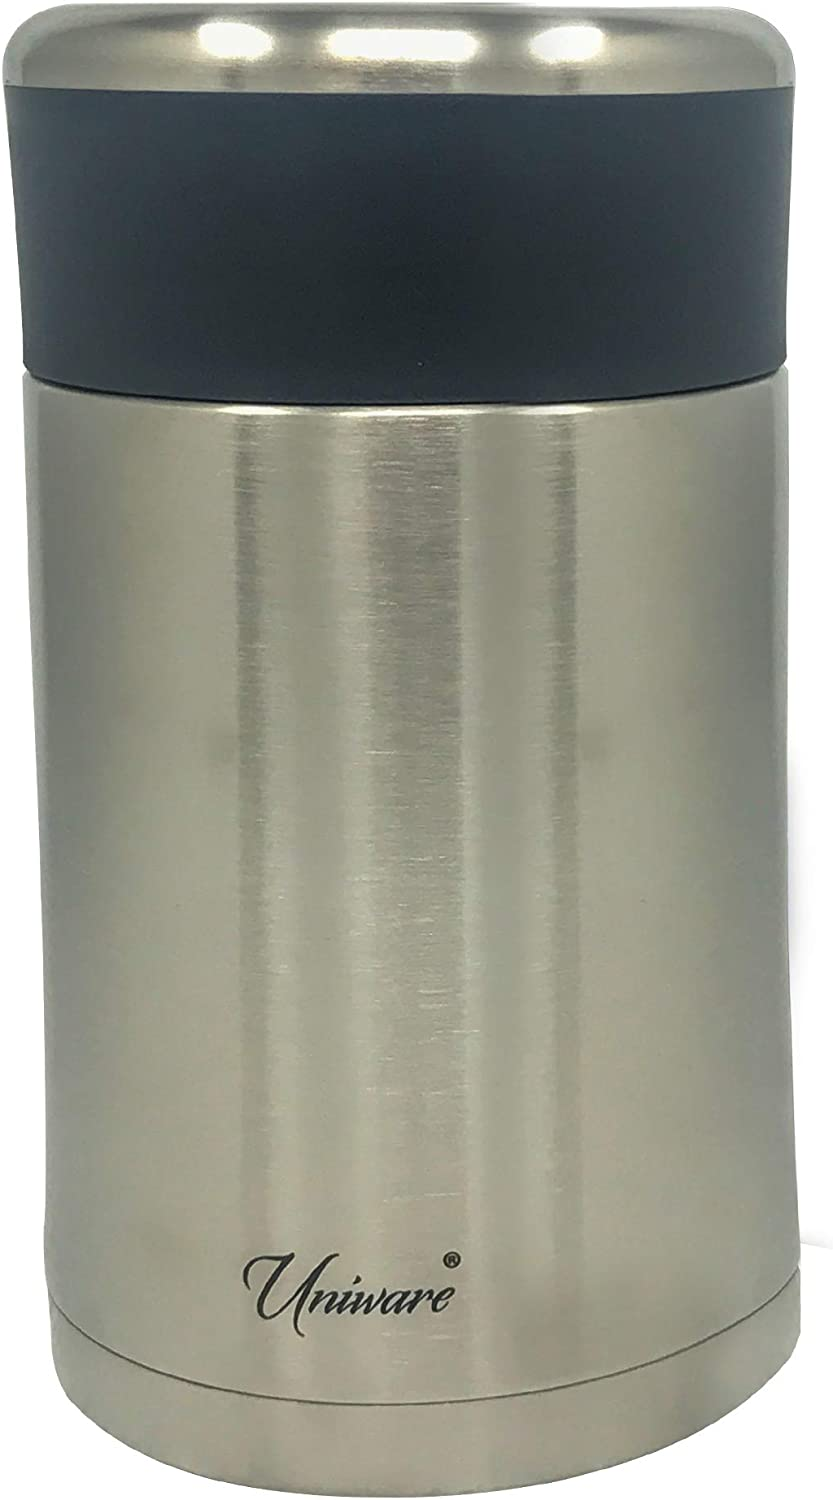 Uniware 18/8 Double Wall Stainless Steel Vacuum Insulated Food Container with Food Grade Plastic Container with Lid and Foldable Spoon- Hot or Cold Thermos Flask Canister with Leakproof Lid